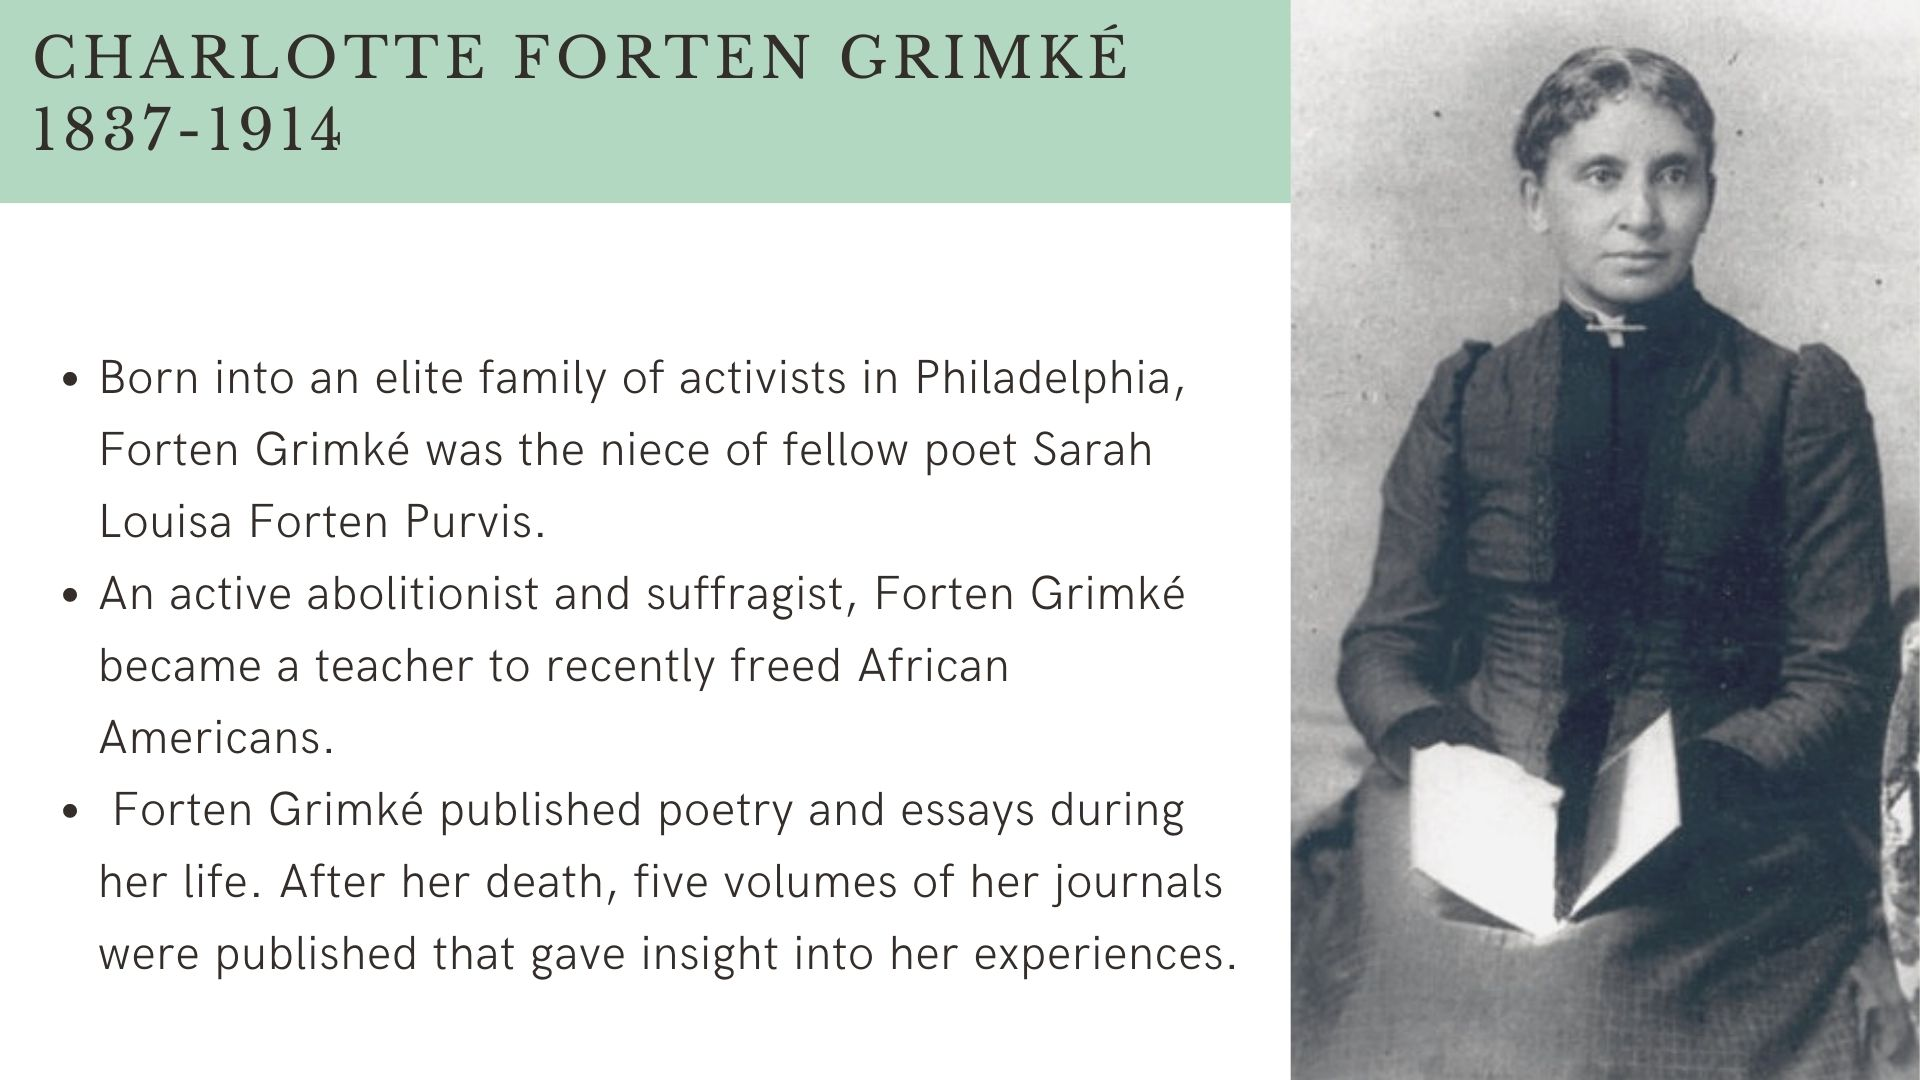 Charlotte Forten Grimké 1837-1914 Born into an elite family of activists in Philadelphia, Forten Grimké was the niece of fellow poet Sarah  Louisa Forten Purvis. An active abolitionist and suffragist, Forten Grimké became a teacher to recently freed African Americans.  Forten Grimké published poetry and essays during her life. After her death, five volumes of her journals were published that gave insight into her experiences.